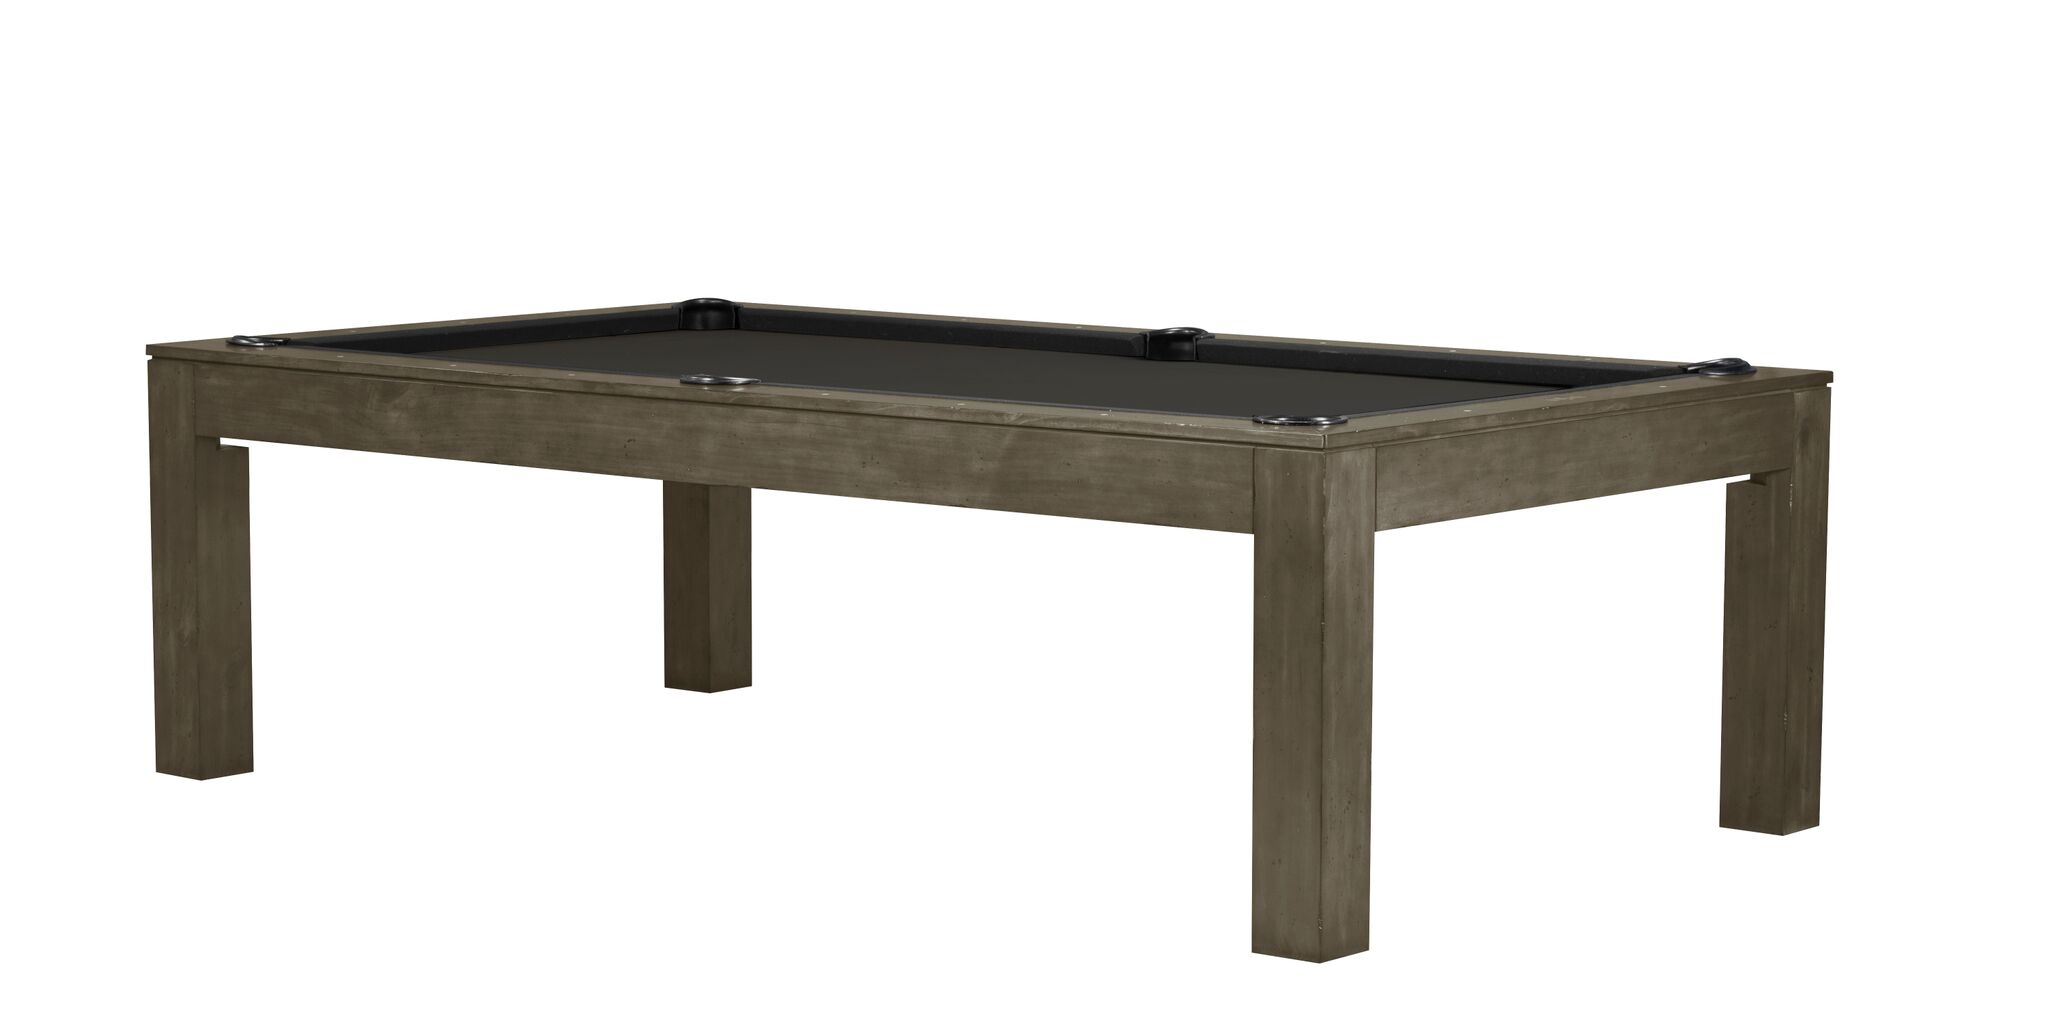 Baylor pool table billiards n more for Table 09 reviews